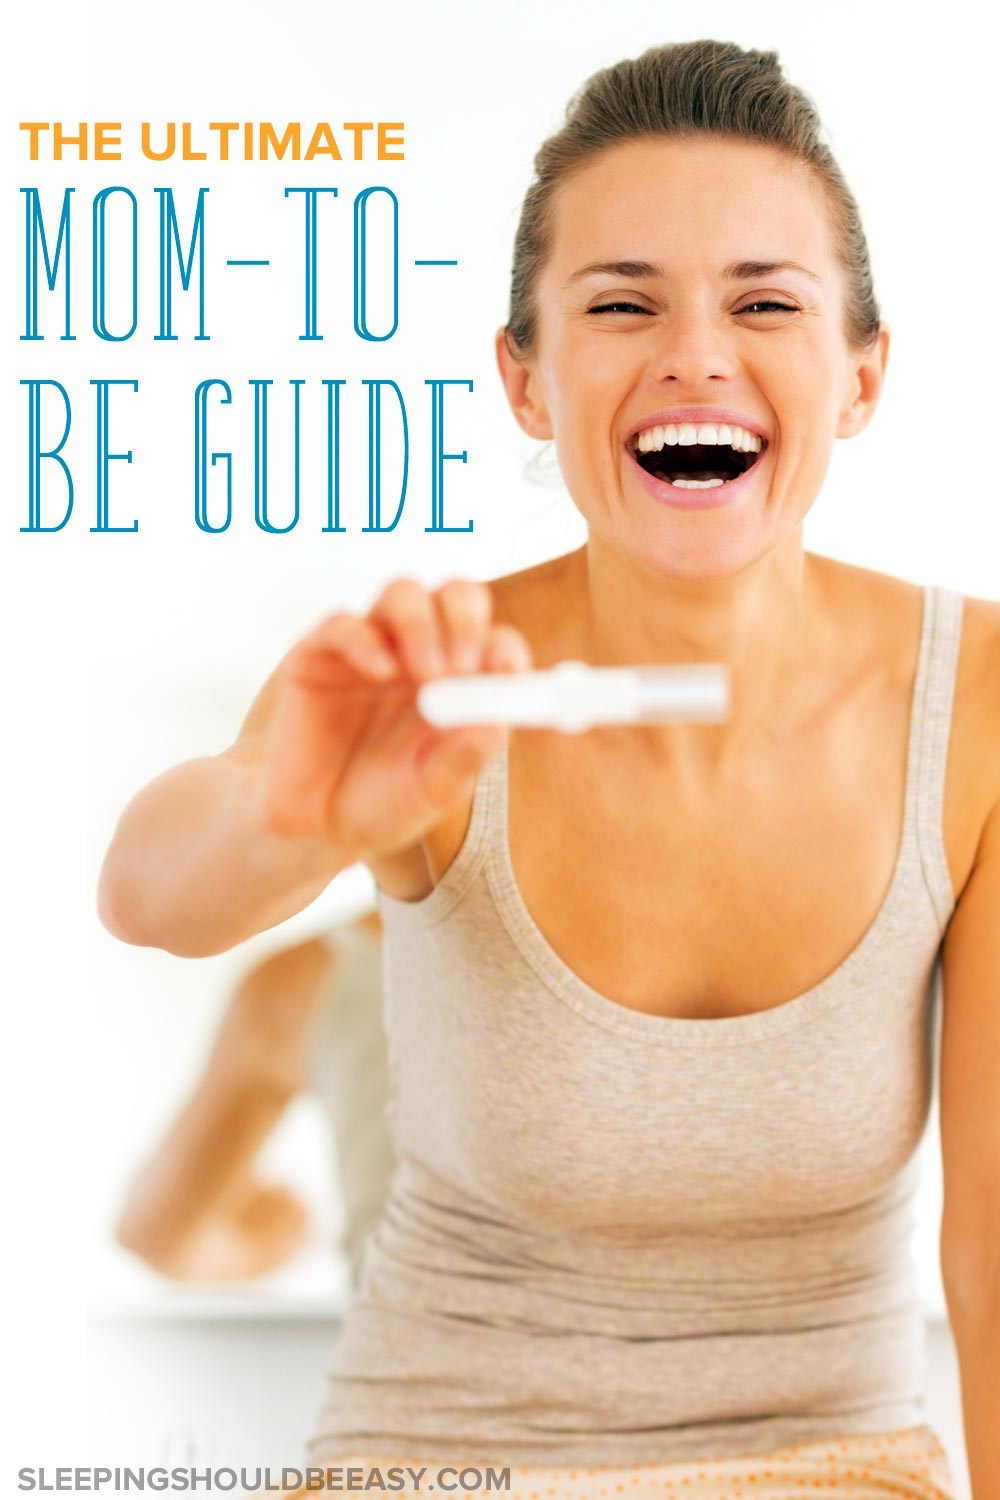 Smiling woman holding out a pregnancy test: The ultimate mom-to-be guide